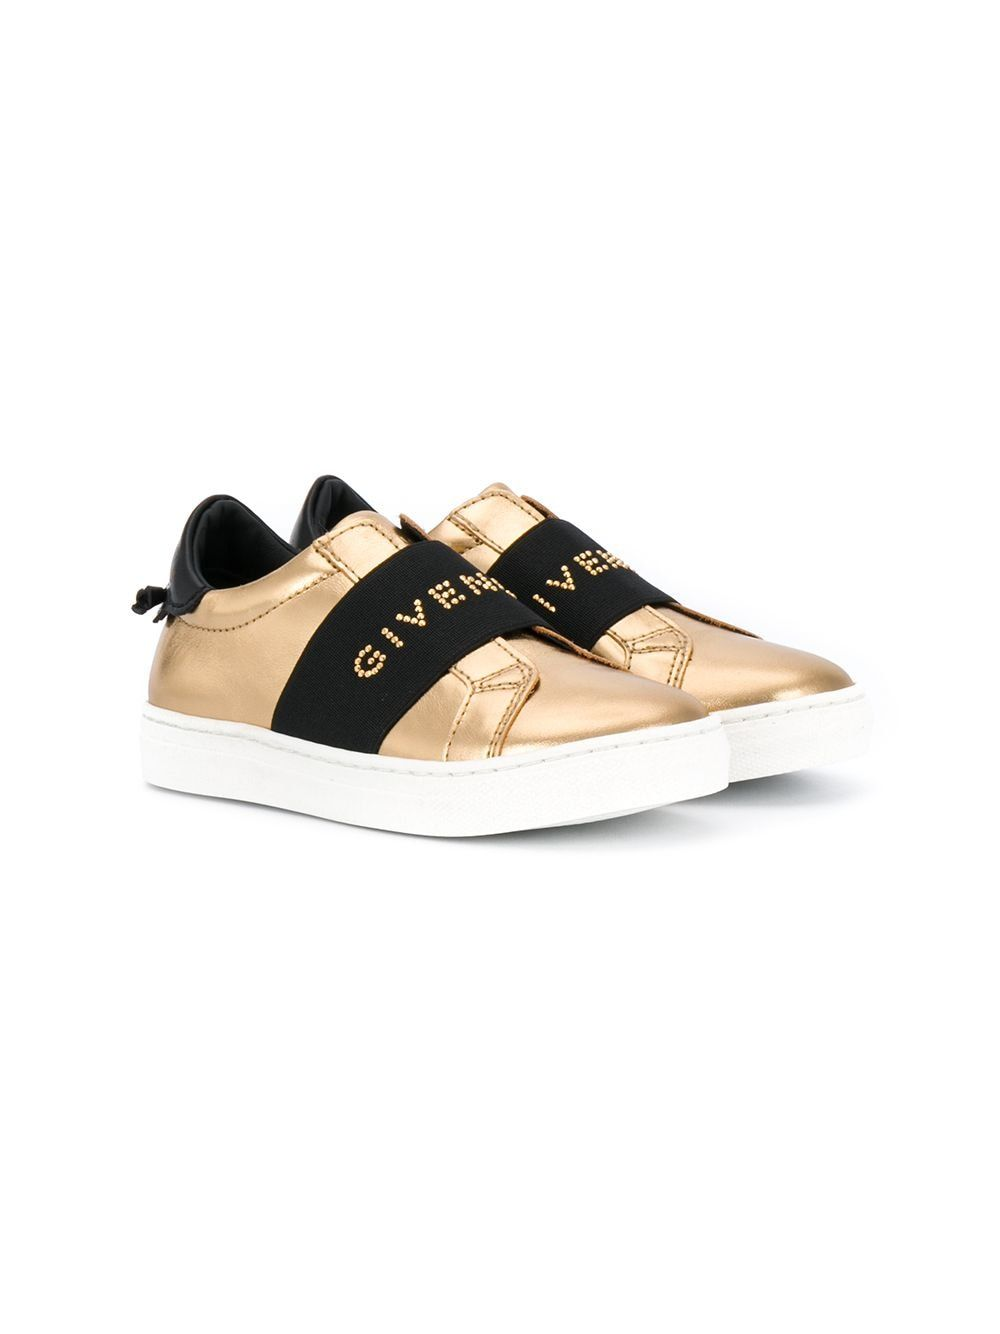 GIVENCHY KIDS Logo Strap Sneaker Gold/White - Maison De Fashion